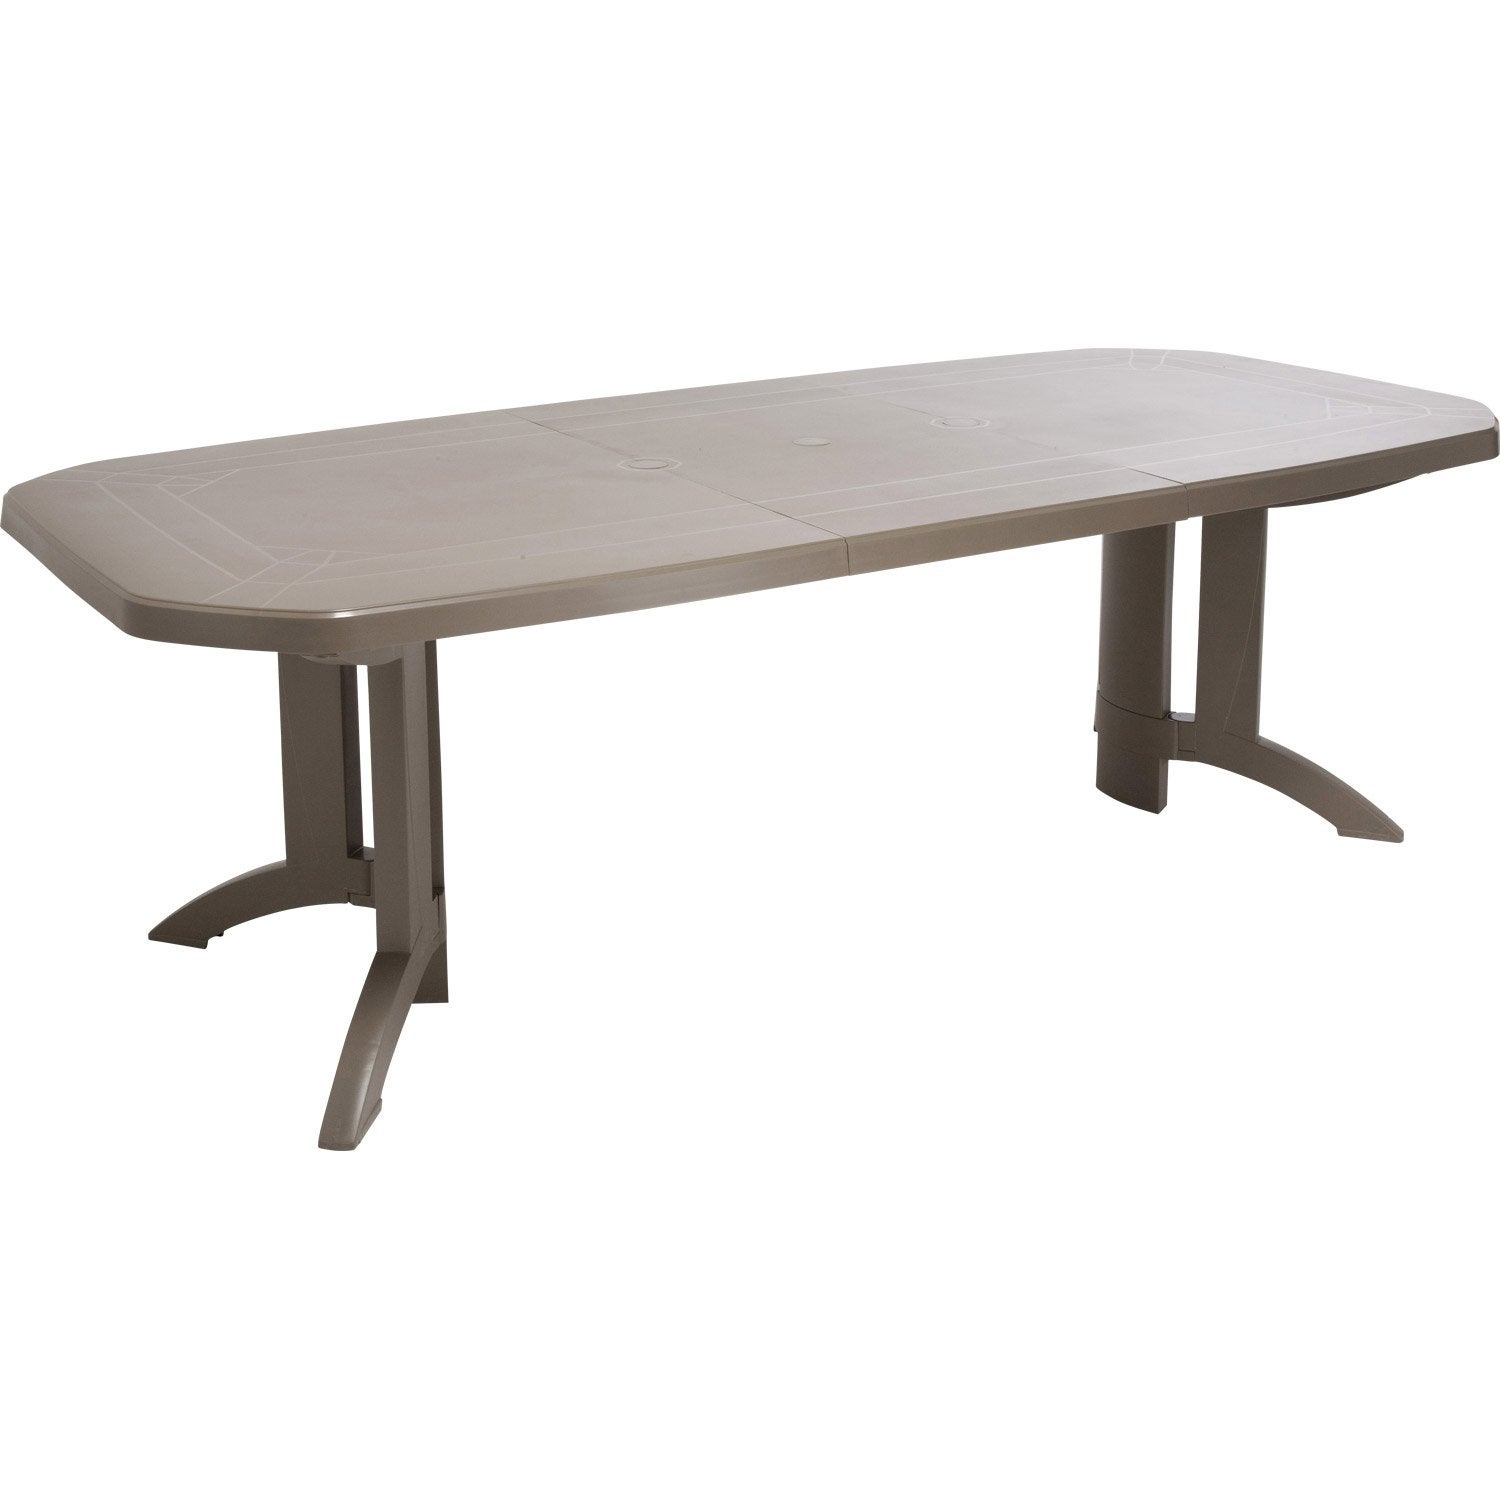 Table de jardin GROSFILLEX Véga rectangulaire taupe 10 personnes ...